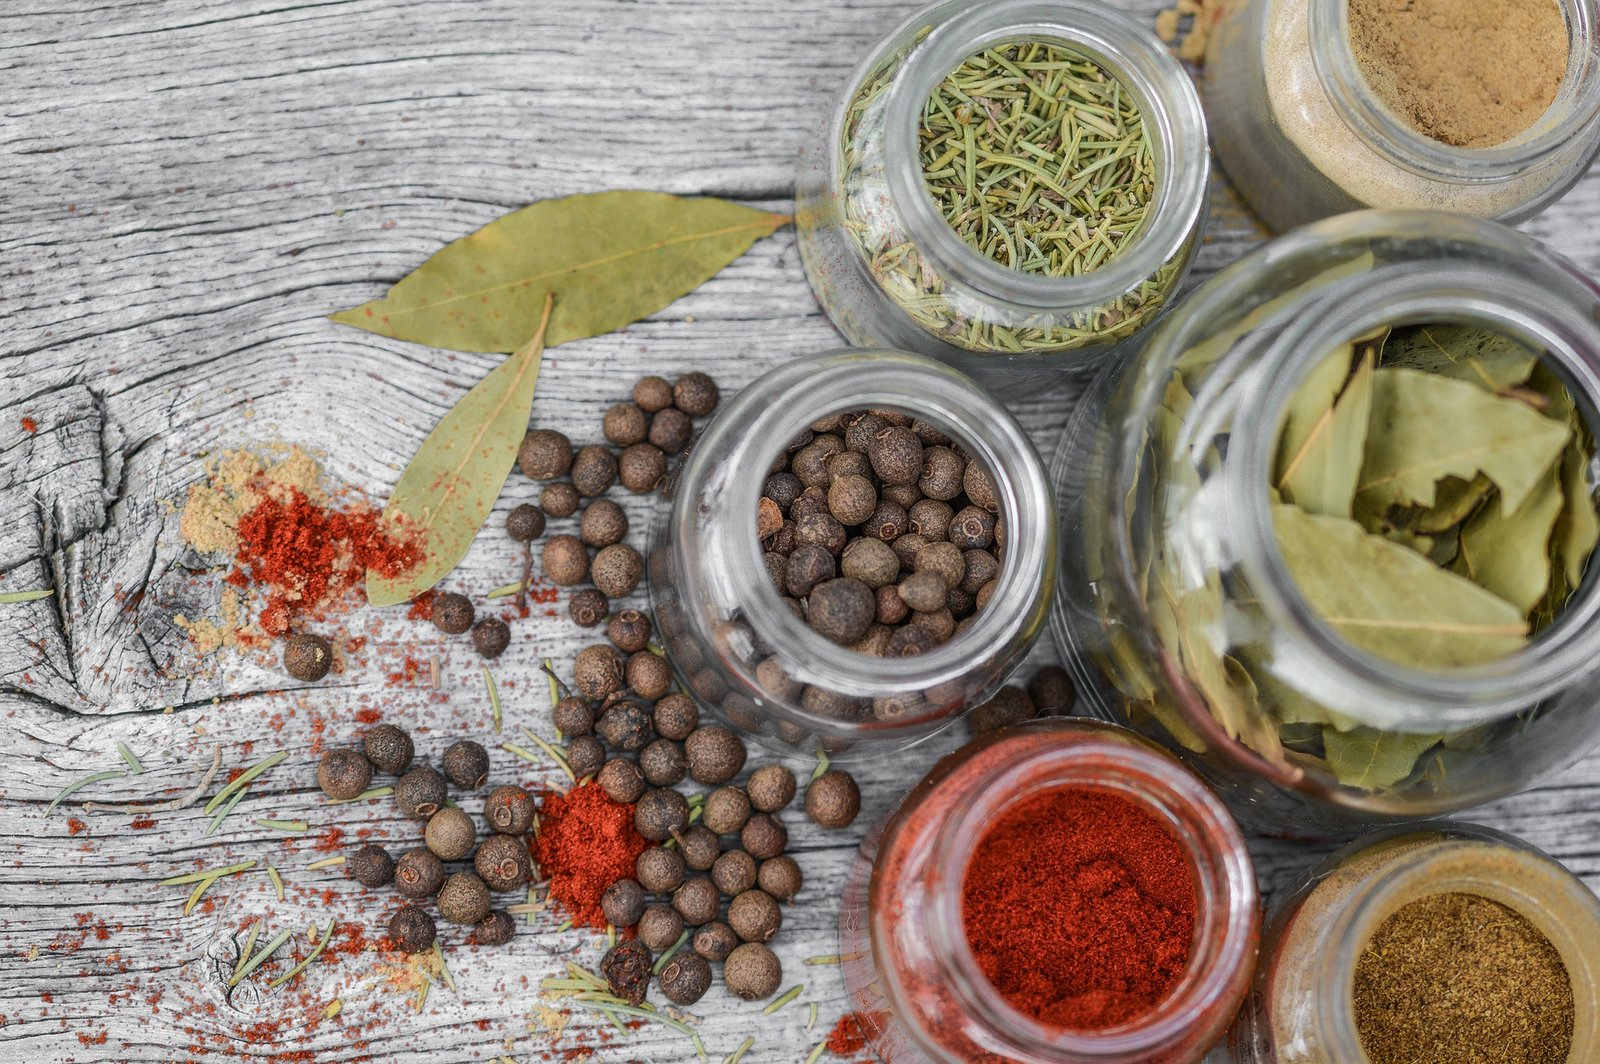 Handy Ingredients That You Should Stock In Kitchen To Cook Indian Recipes